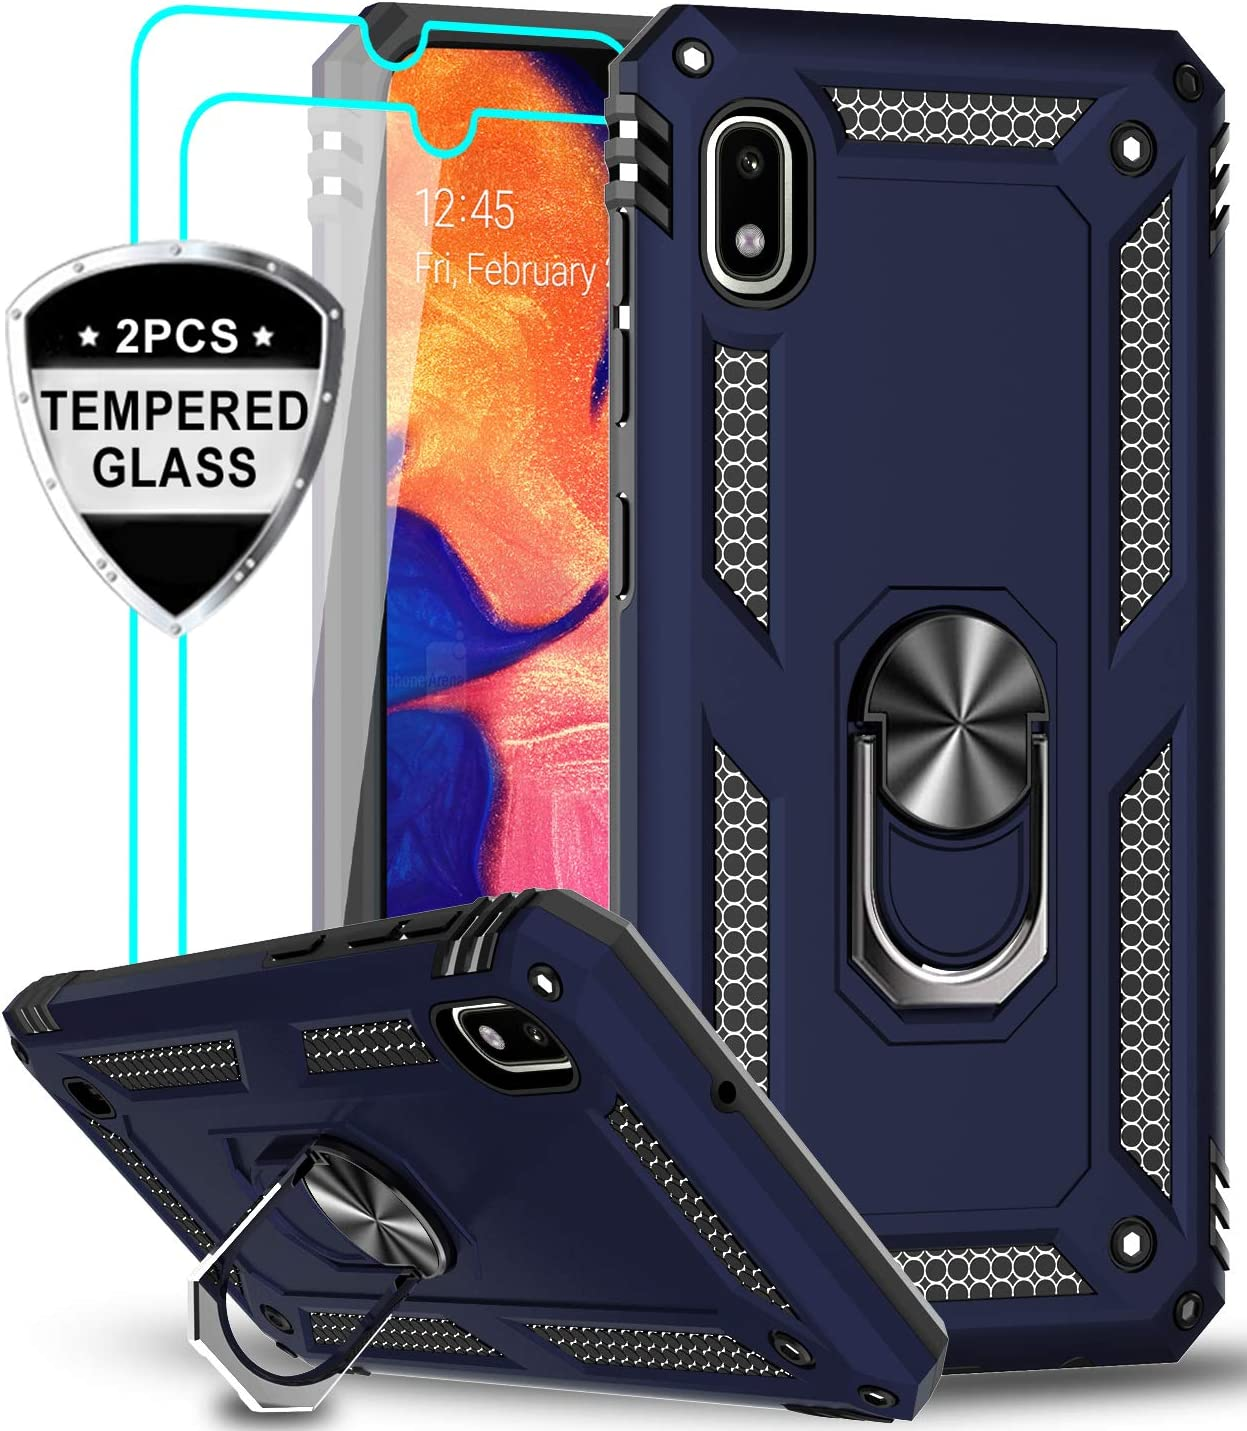 LeYi Samsung Galaxy A10 Case (Not Fit A10E) with Tempered Glass Screen Protector [2 Pack], Military Grade Defender Protective Phone Case with Car Ring Holder Kickstand for Samsung A10, JSFS Blue